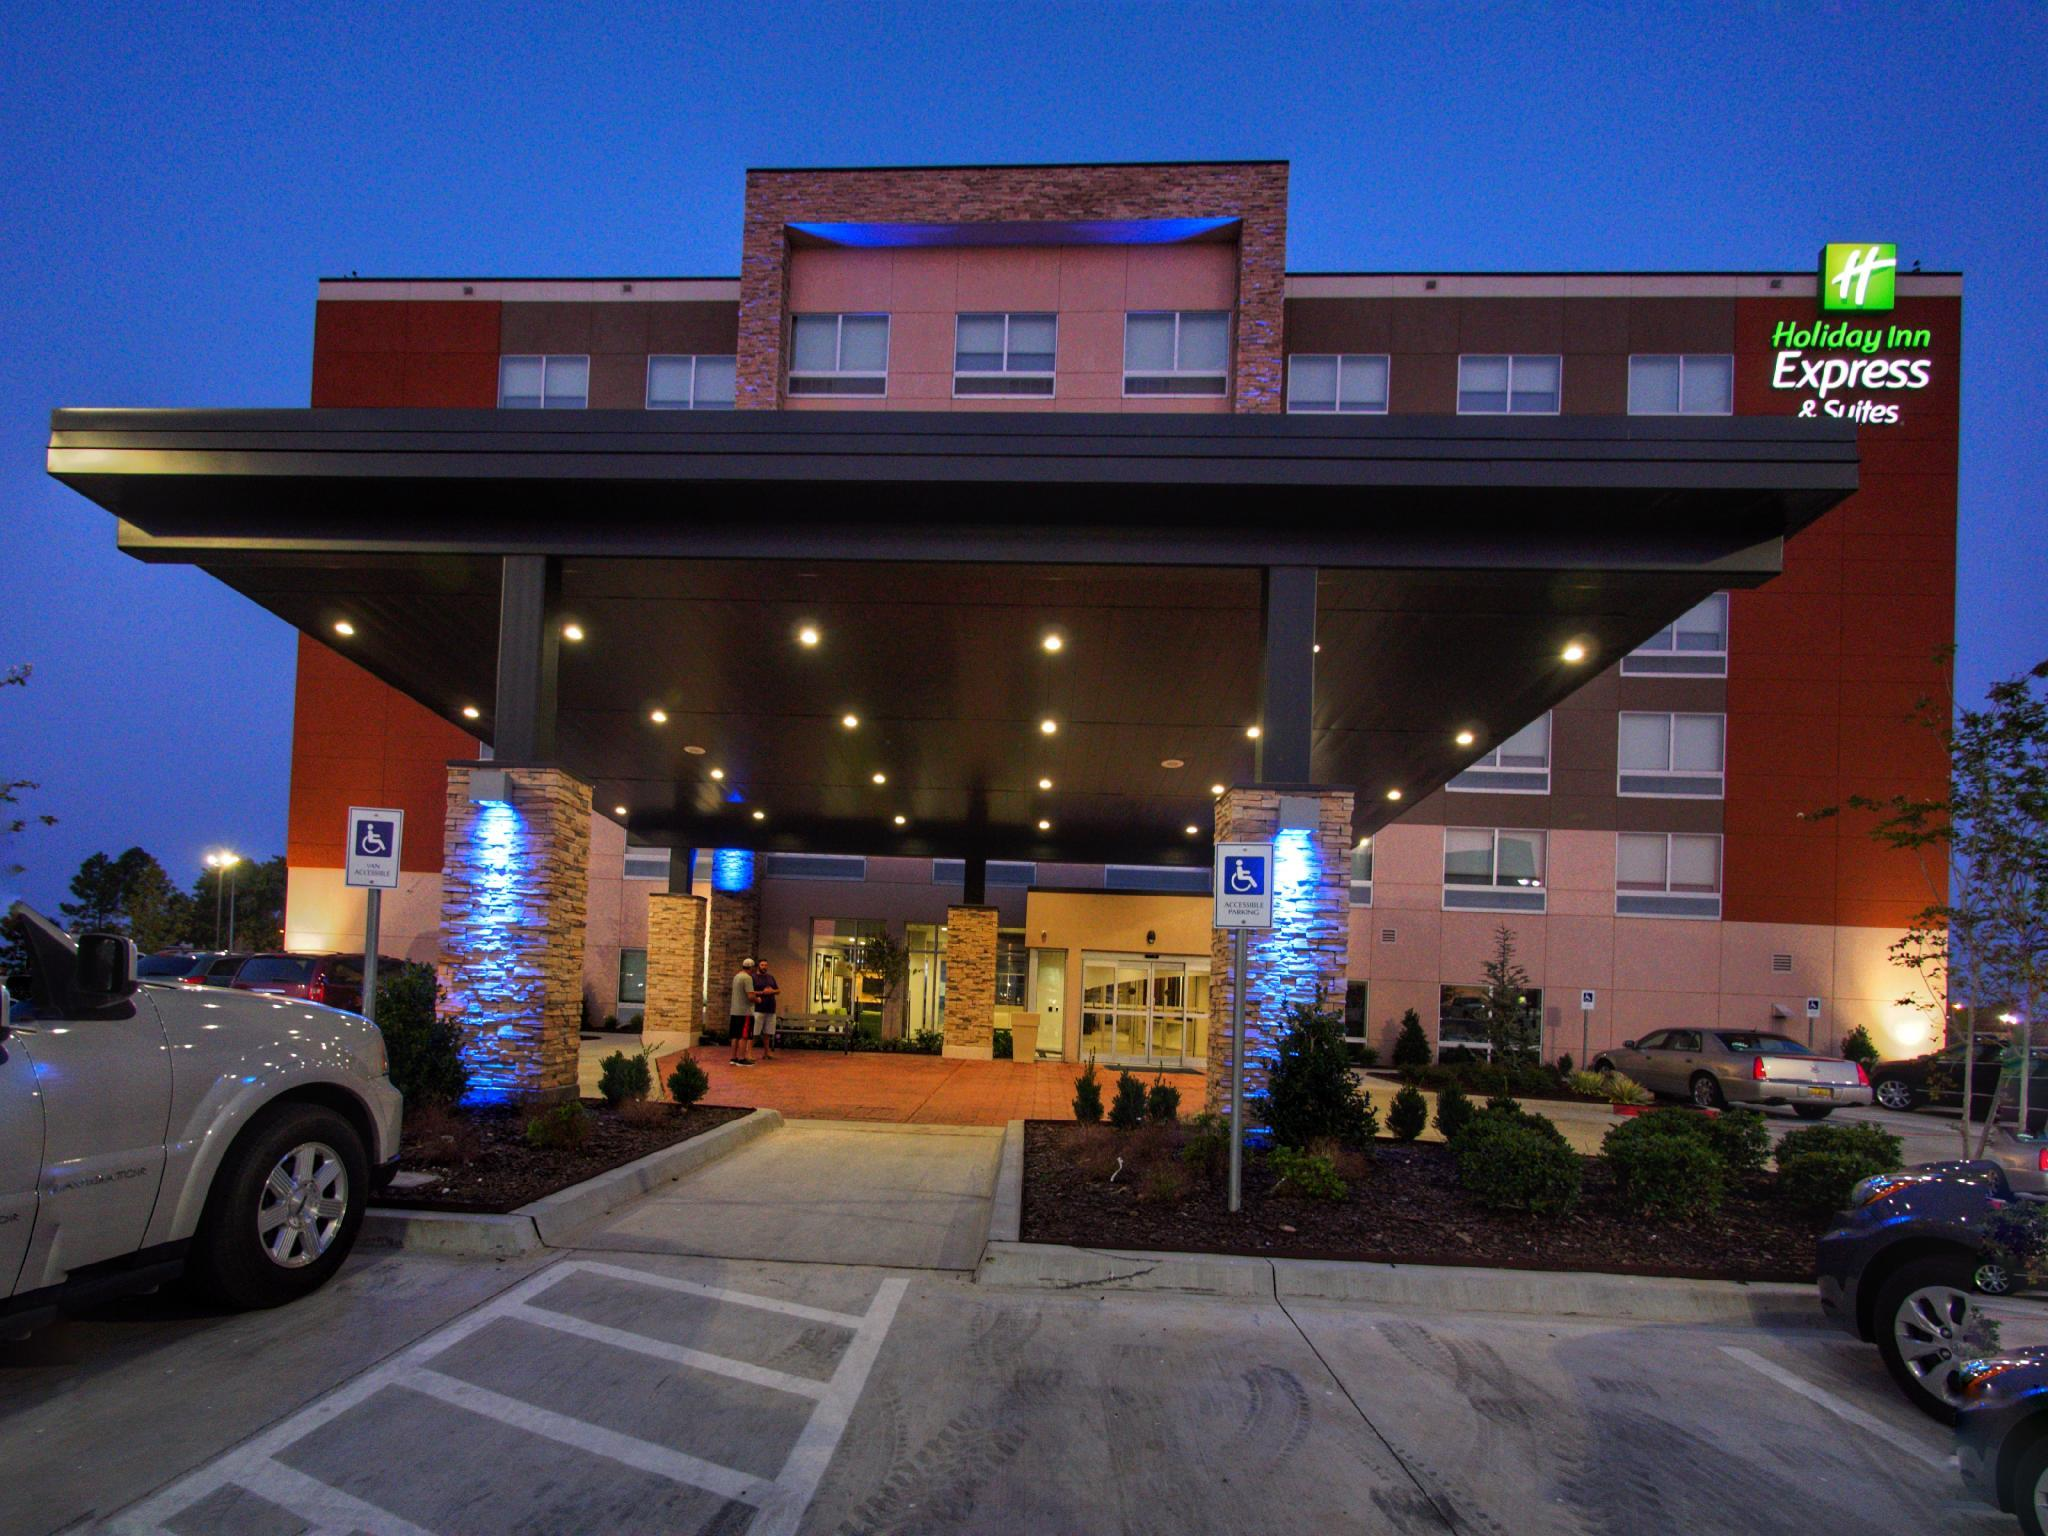 Holiday Inn Express & Suites Moore, Cleveland